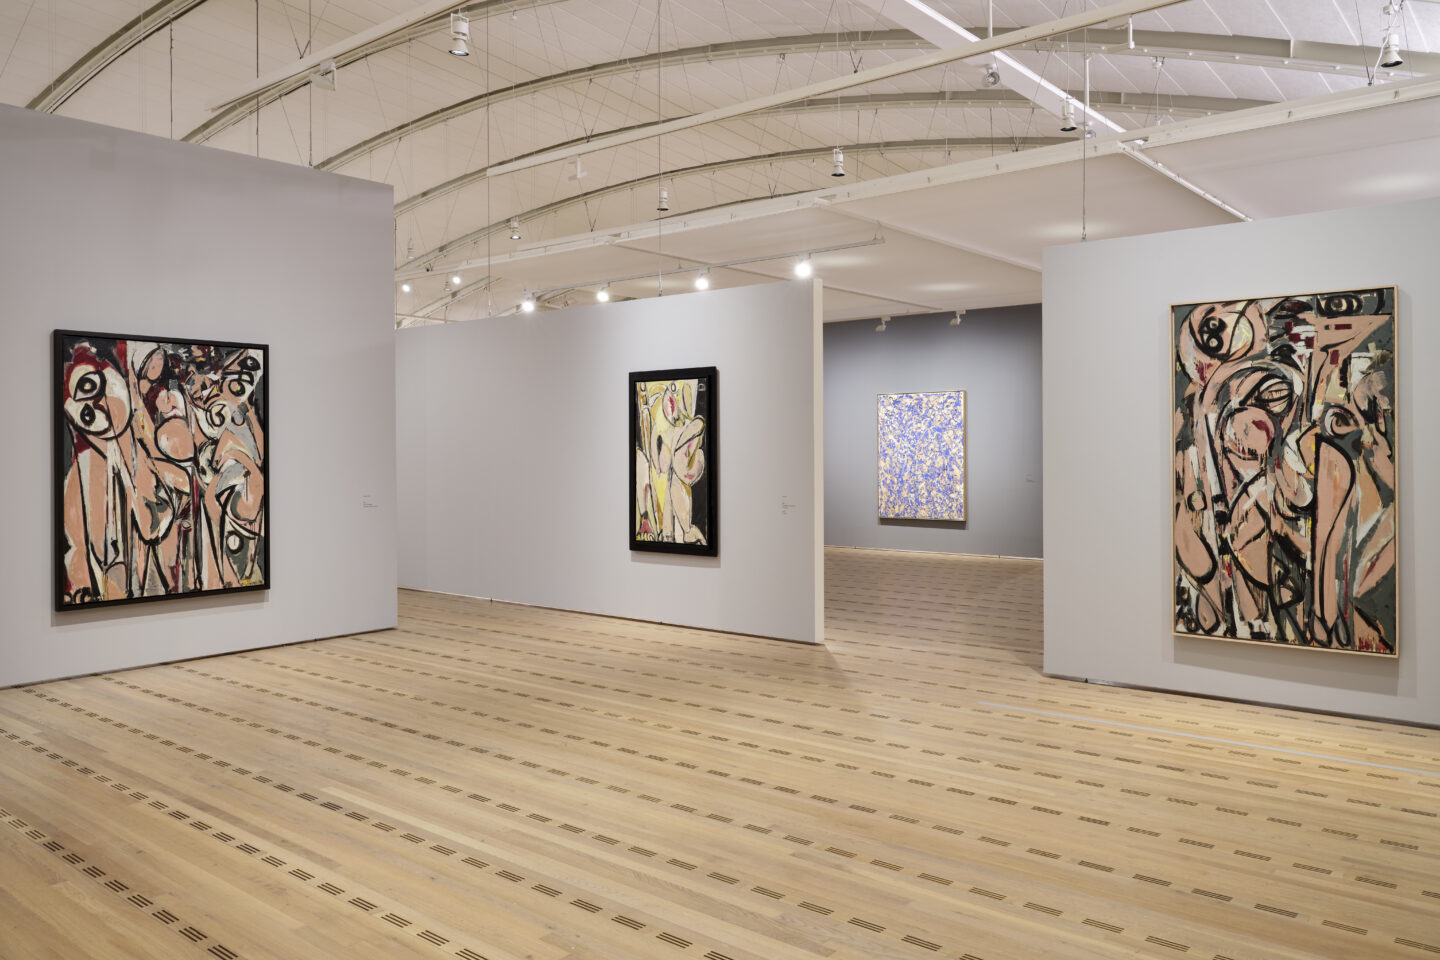 Exhibition View Lee Krasner Soloshow «Living Colour» at Zentrum Paul Klee, Bern, 2020 / © Zentrum Paul Klee, Bern